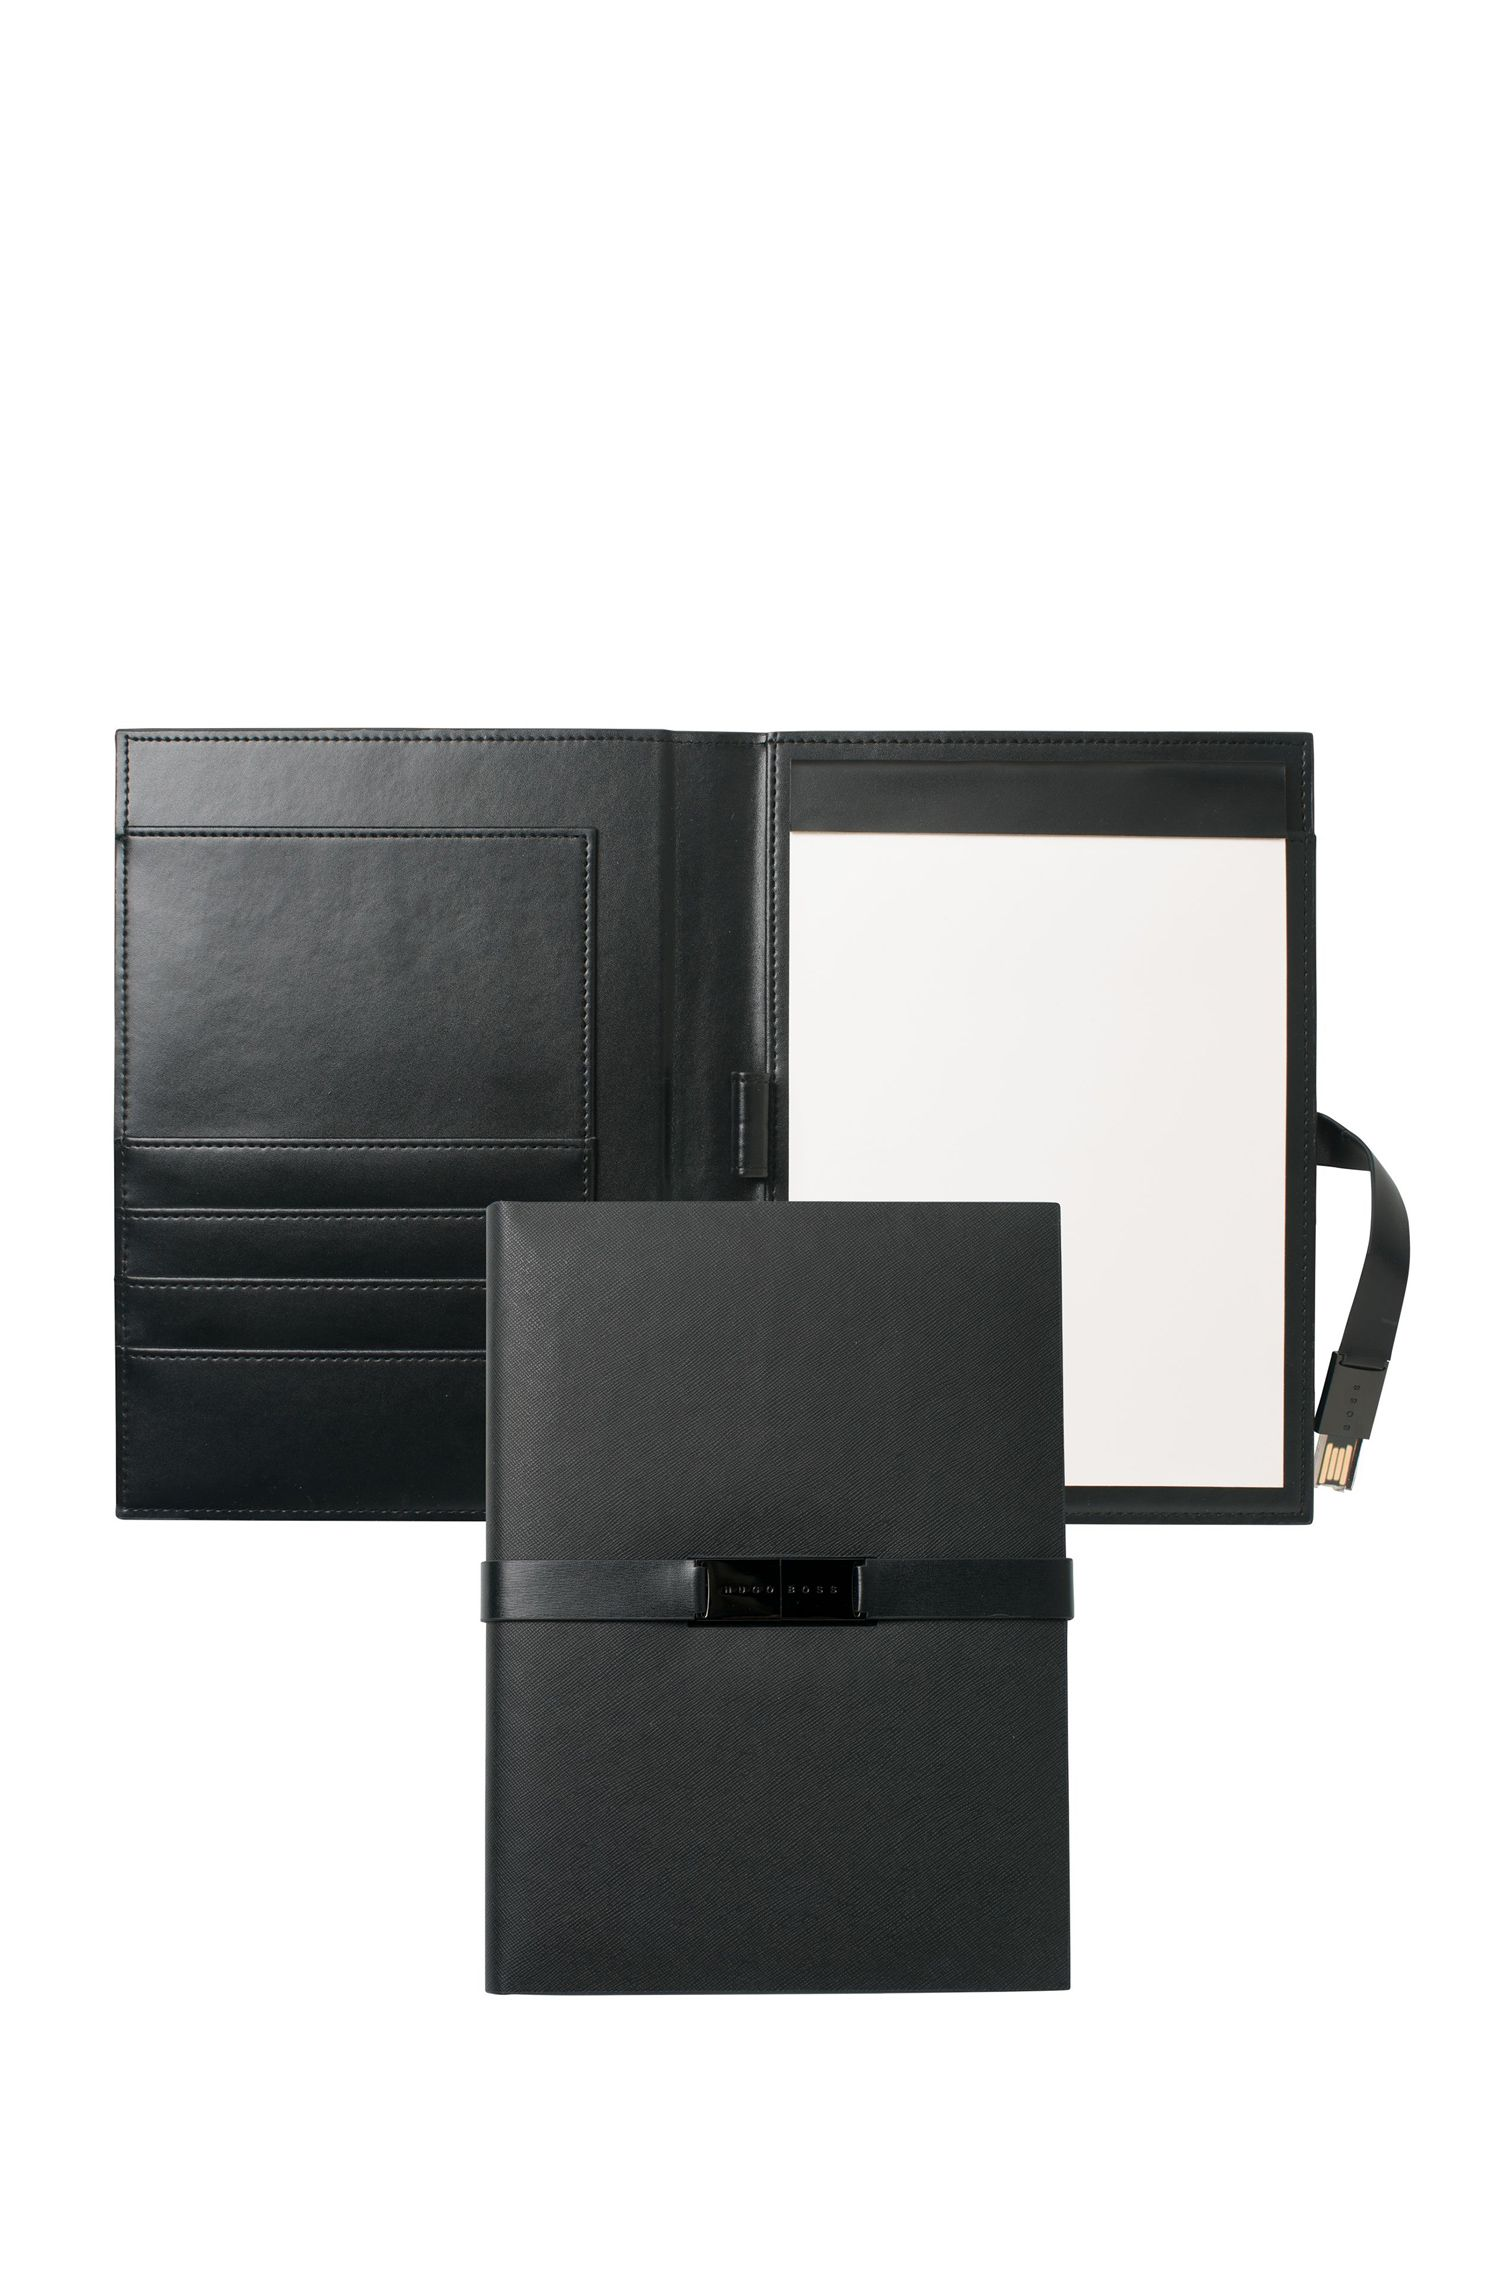 'Folder With USB Binder' | Leather Folder With Pad, USB Stick